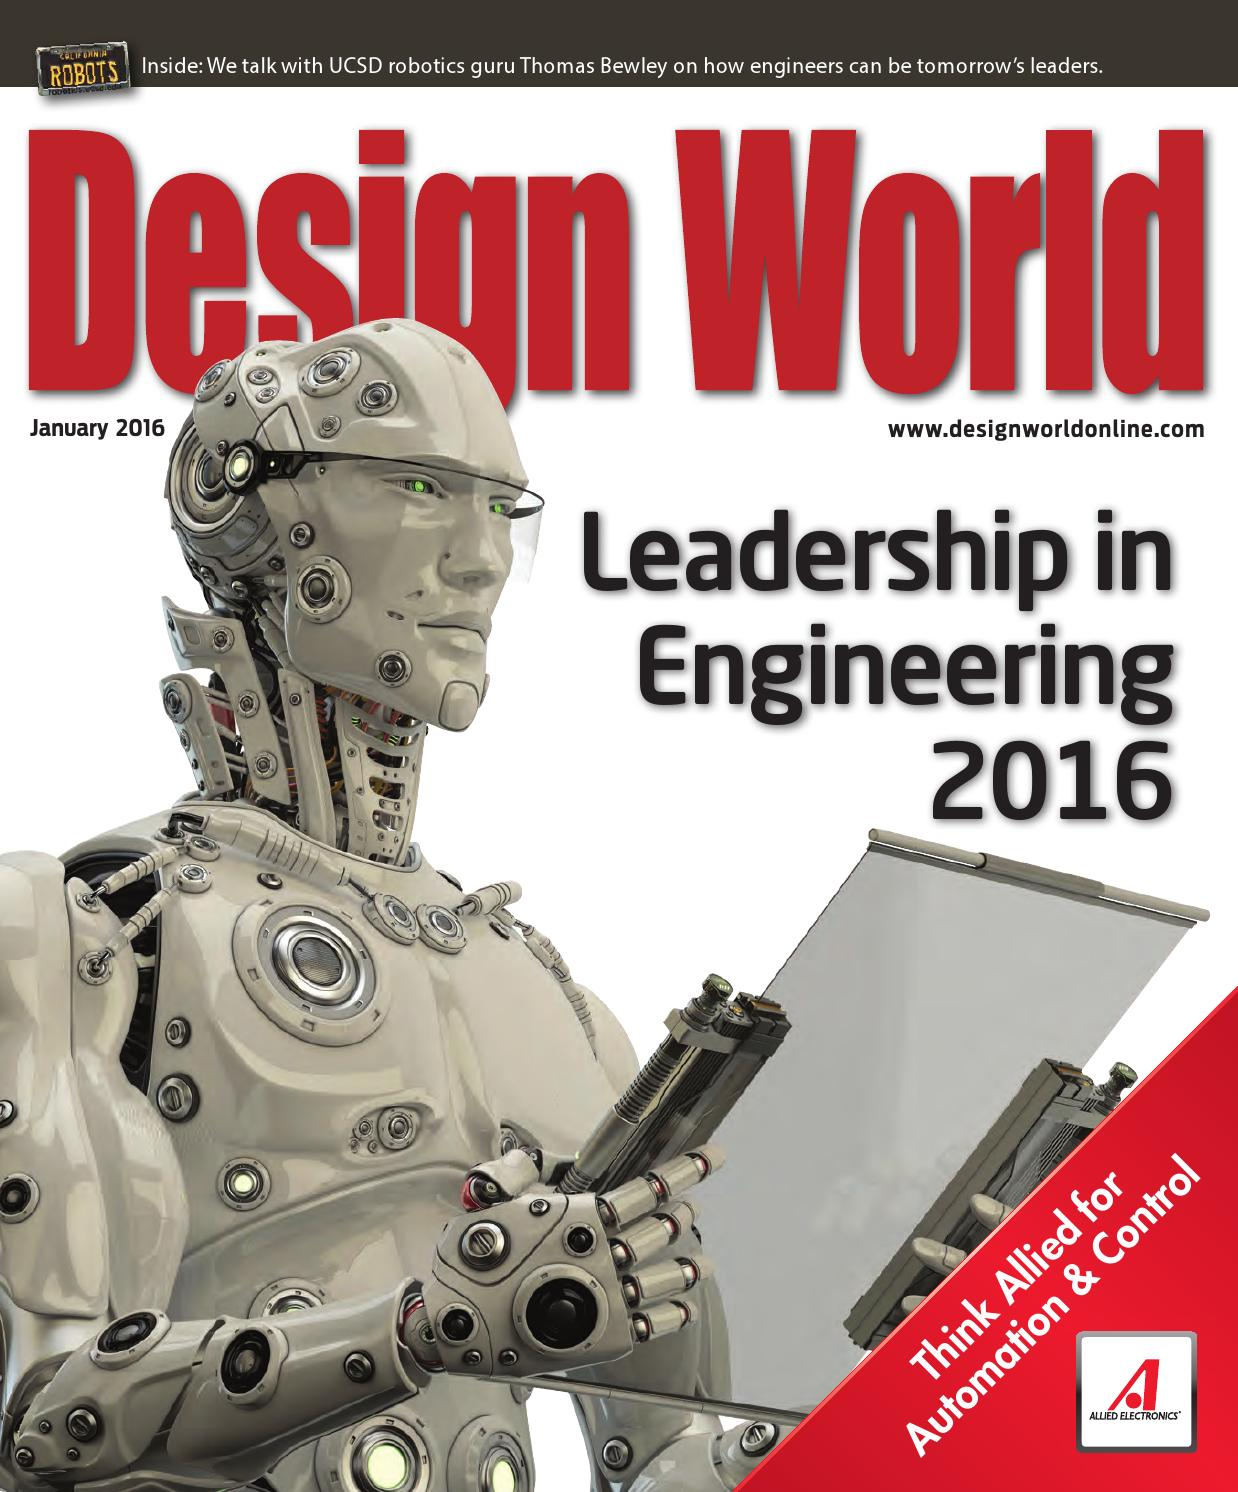 Design World January 2016 By Wtwh Media Llc Issuu Circuit Board With Fuse Potted Spade Electrode Connection Water Heater